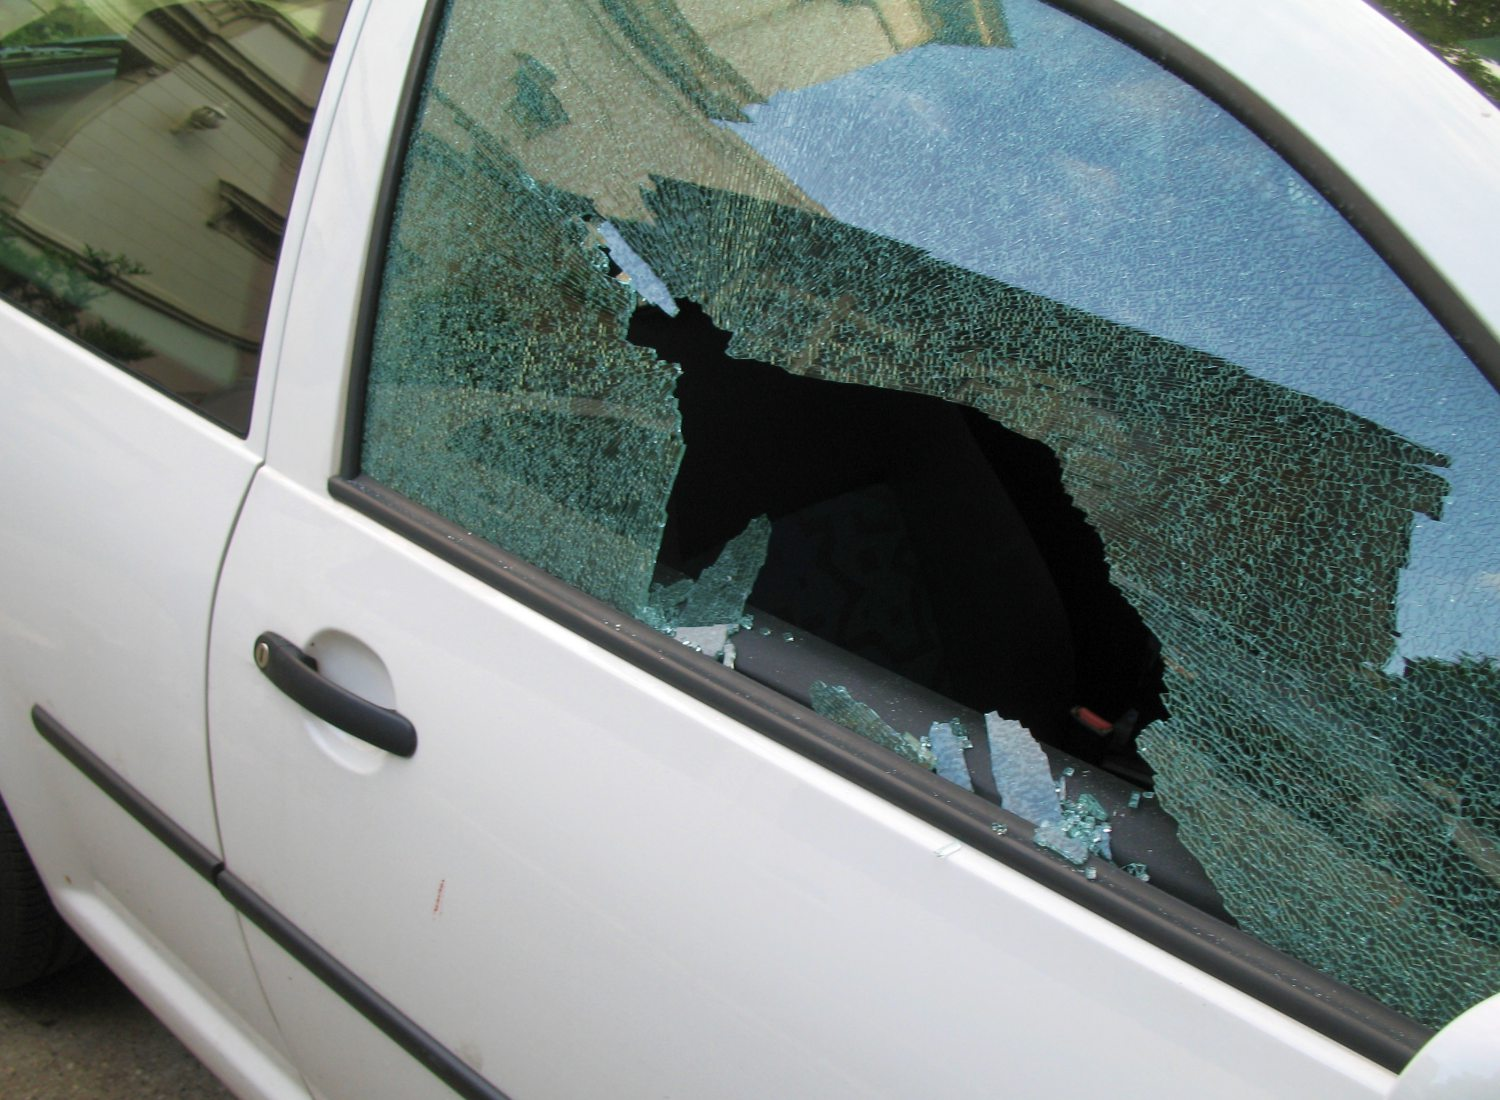 Solana Windscreens Offers Affordable Windscreen Repair Services